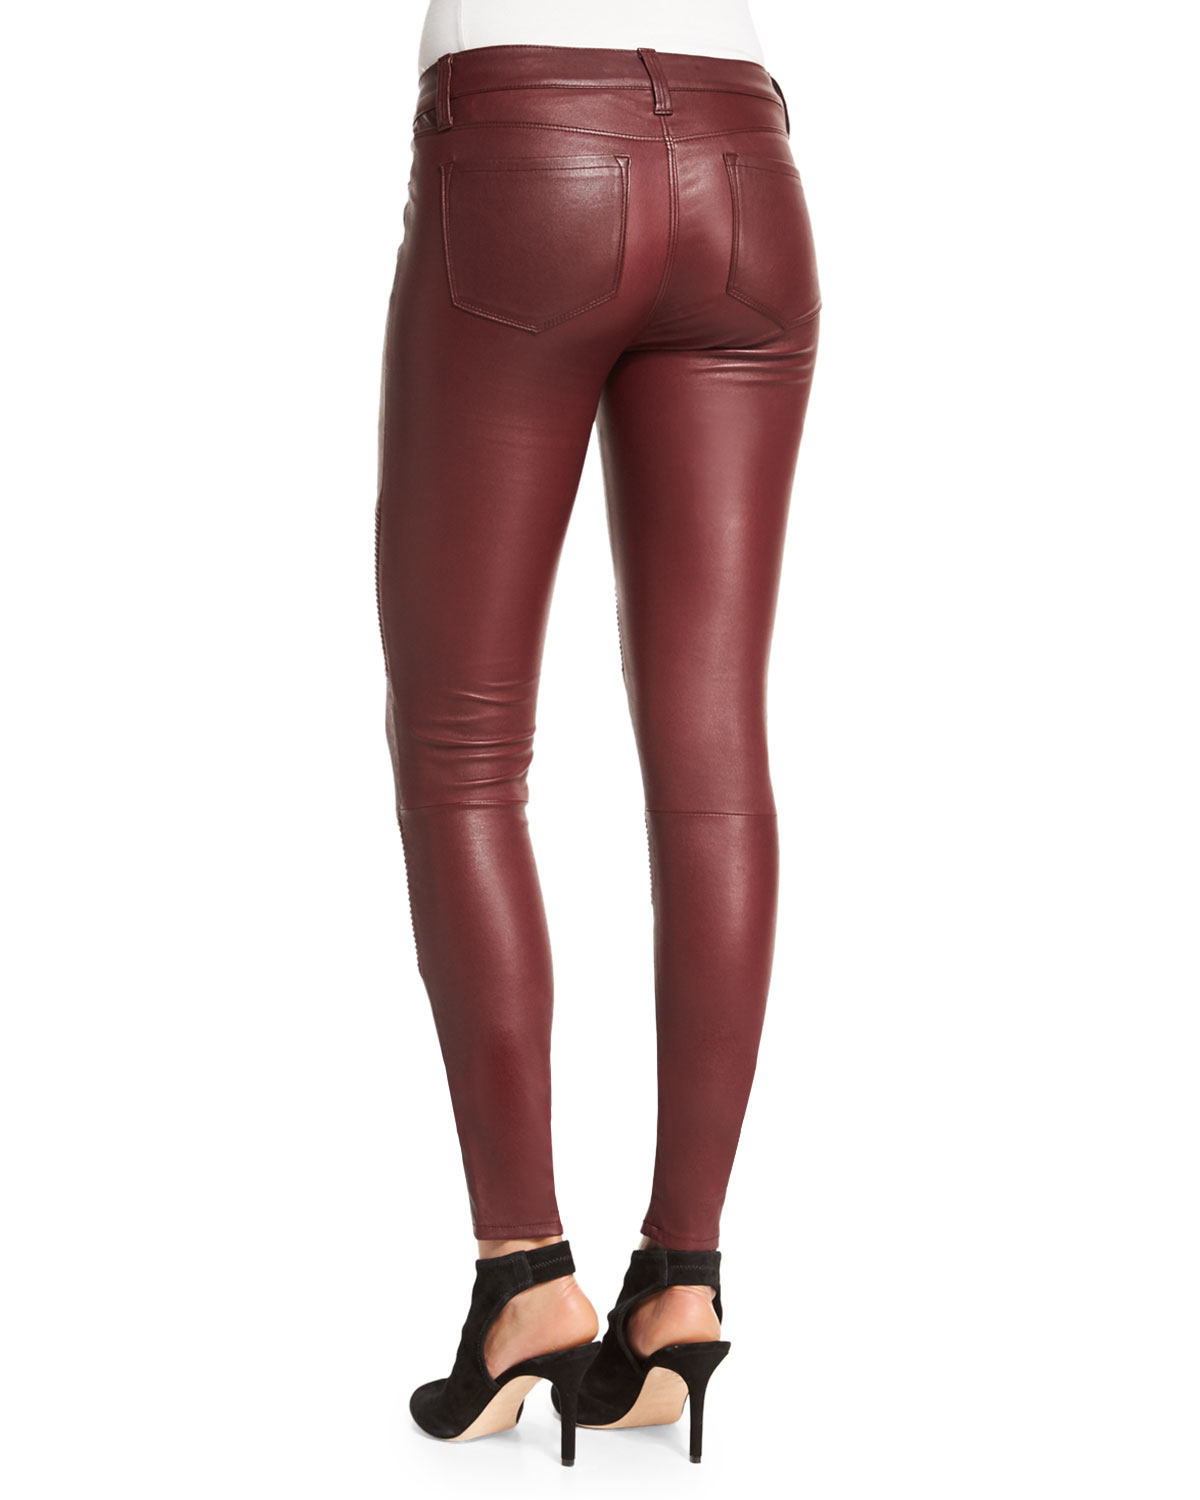 Discover leather leggings and trousers at ASOS. From tube pants, high waisted & disco to leggings & skinny trousers. Style up your leggings at ASOS.